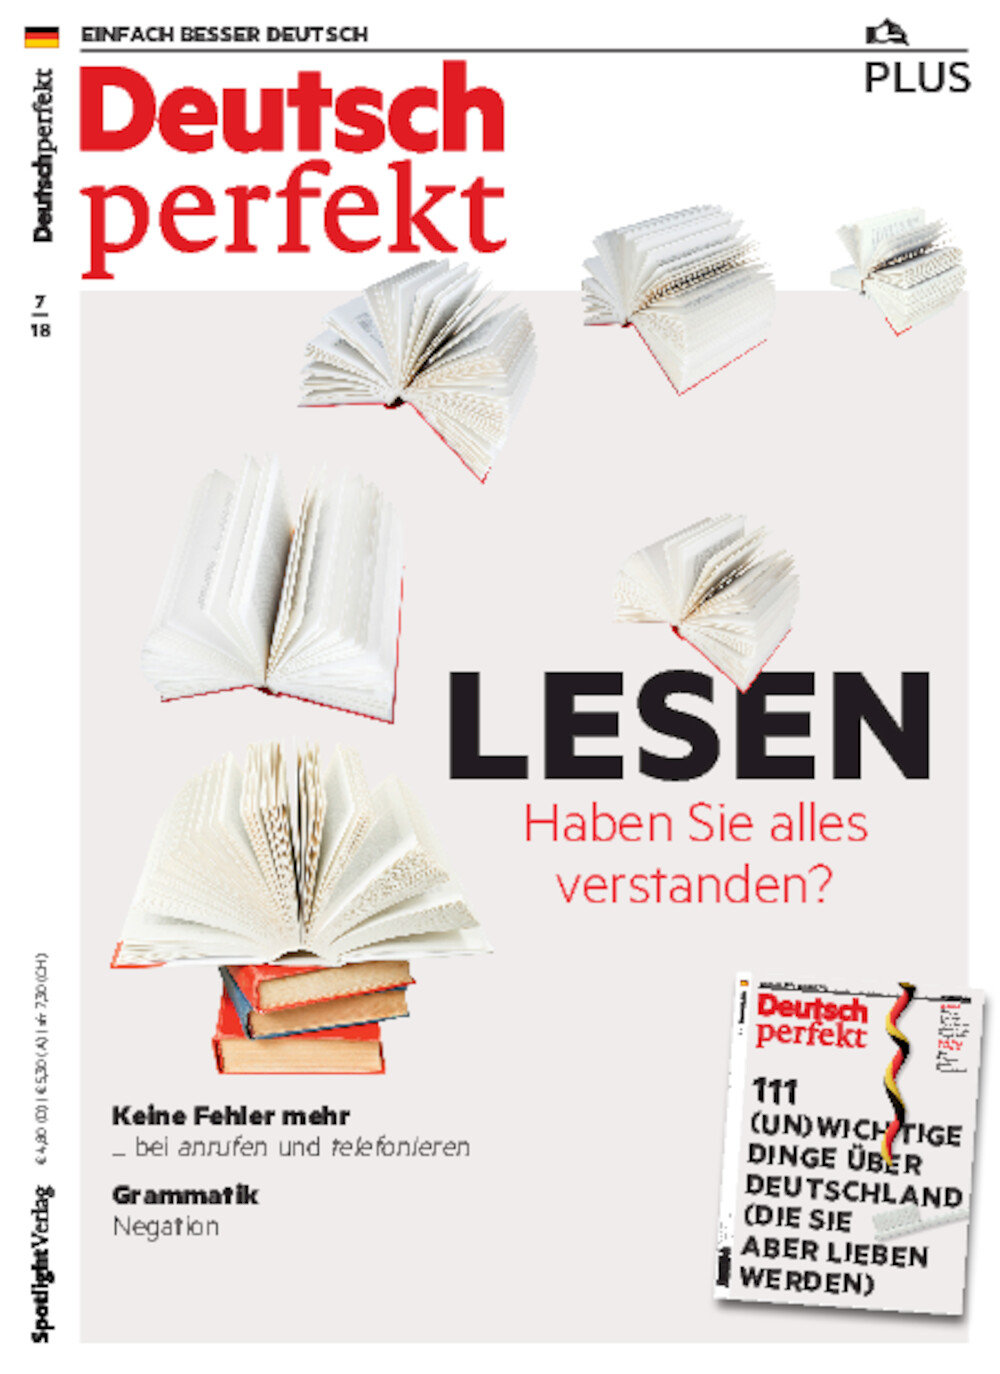 Deutsch perfekt PLUS ePaper 07/2018